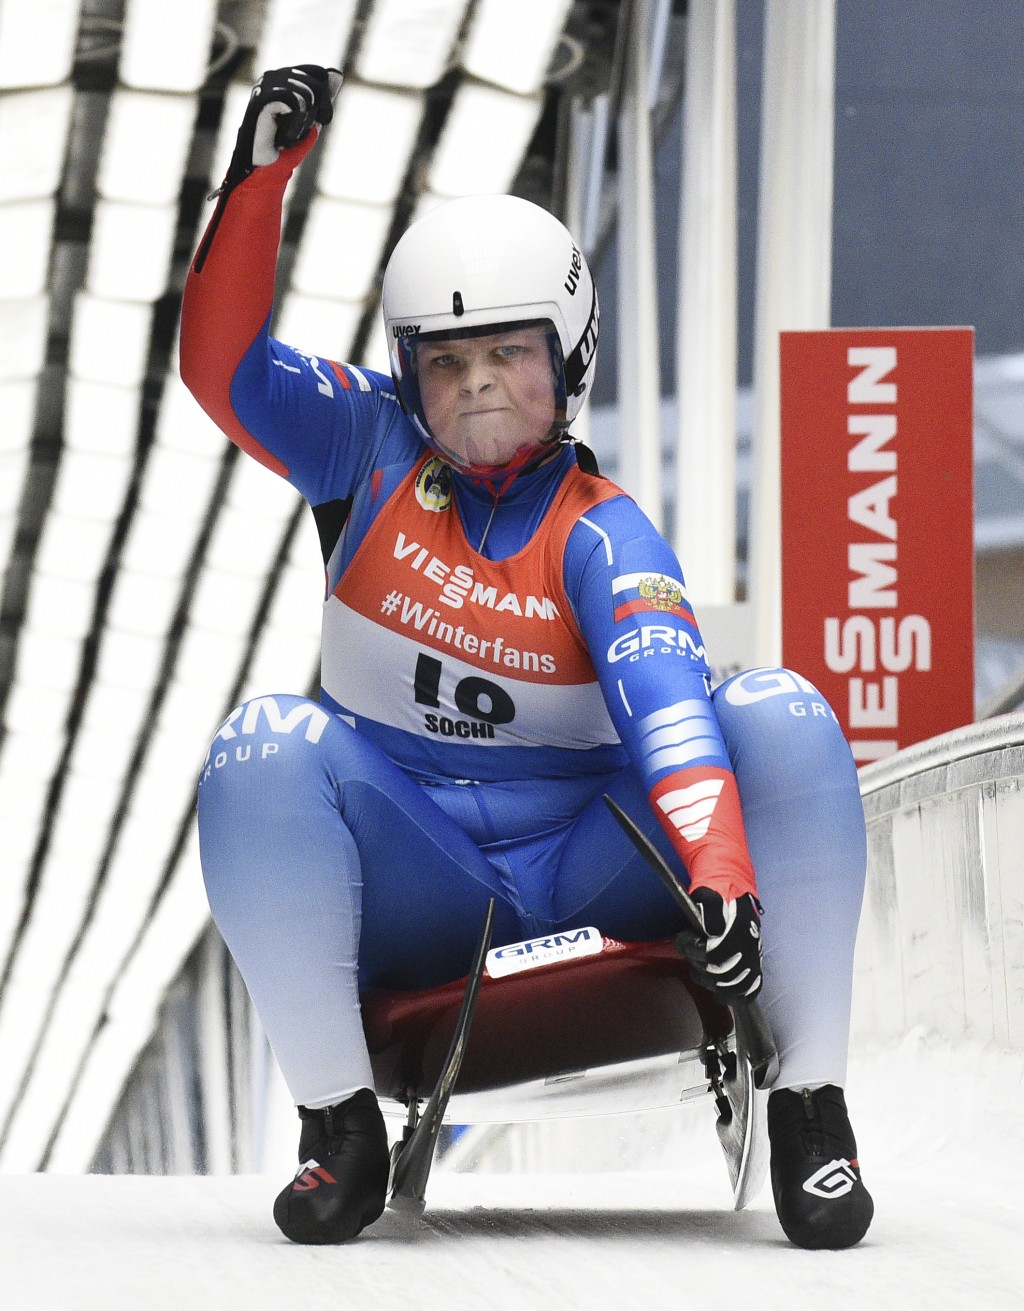 Viktoriia Demchenko of Russia reacts after finishing in women competition at the Luge World Cup 2018/2019 in Sochi, Russia, Saturday, Feb. 23, 2019. (...